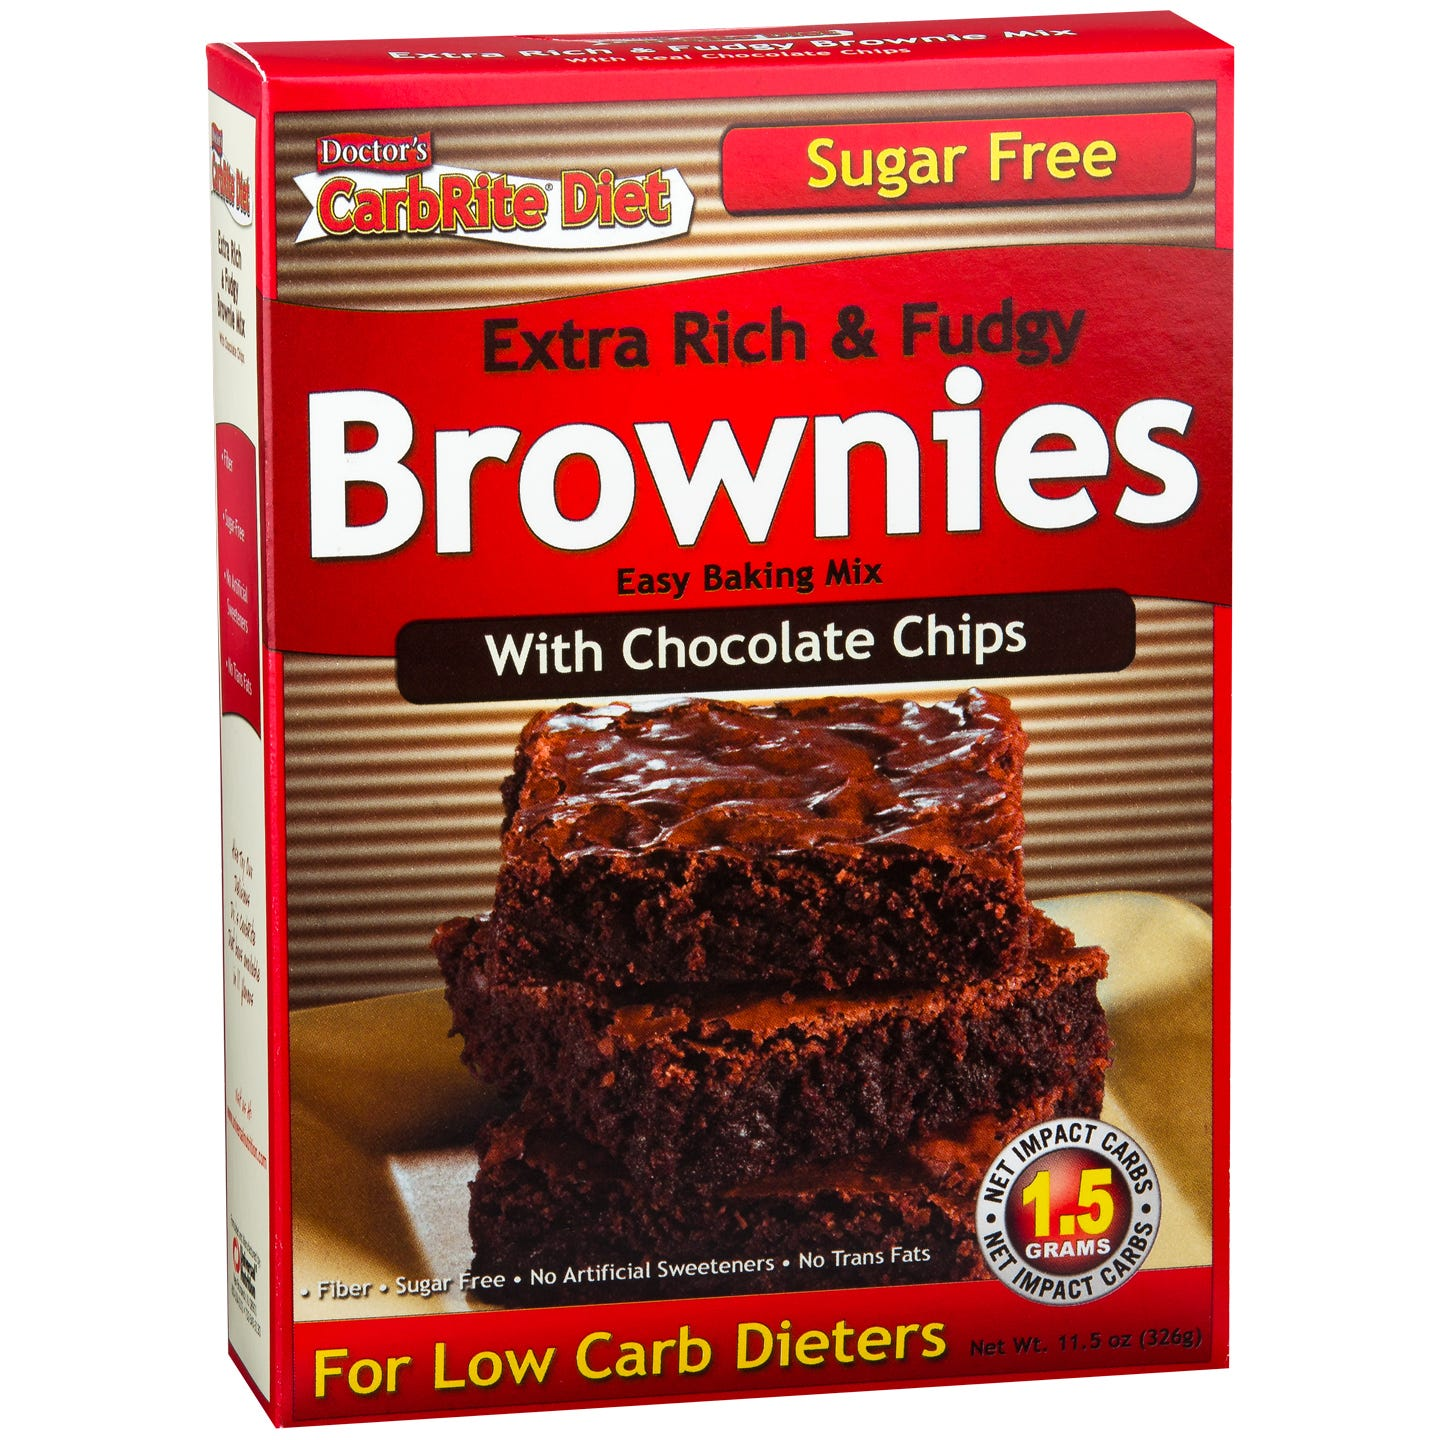 Chocolate Chip Brownie Mix 11.5 oz, Doctor's CarbRite Diet - Rapid Diet Weight Loss Products Shop